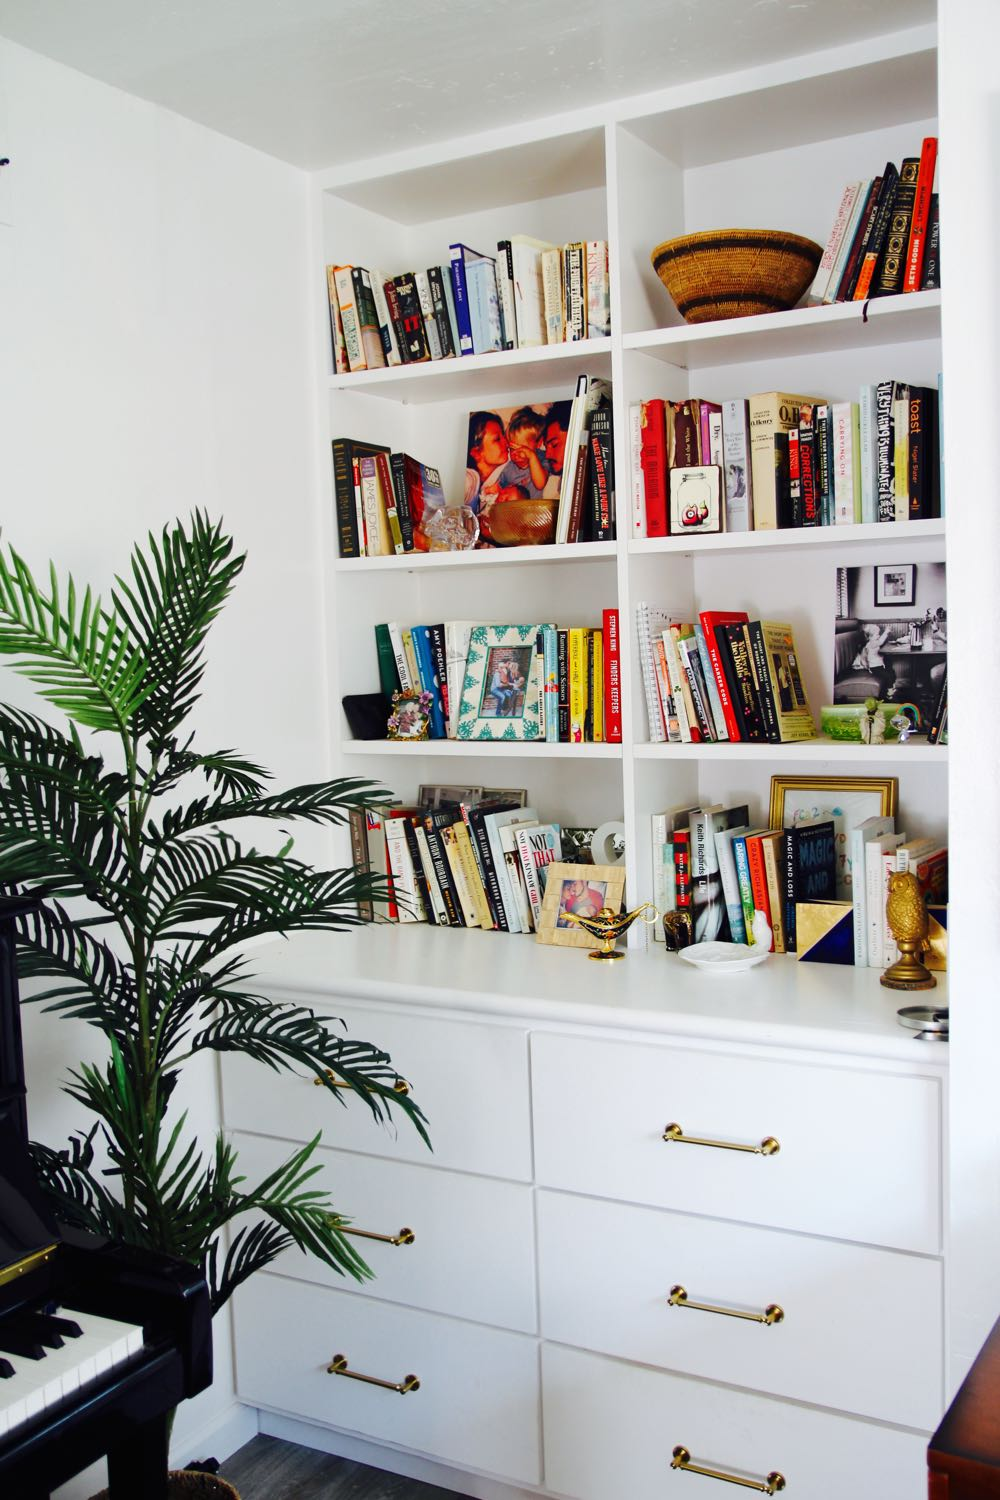 How to create the perfect bookshelf and display case